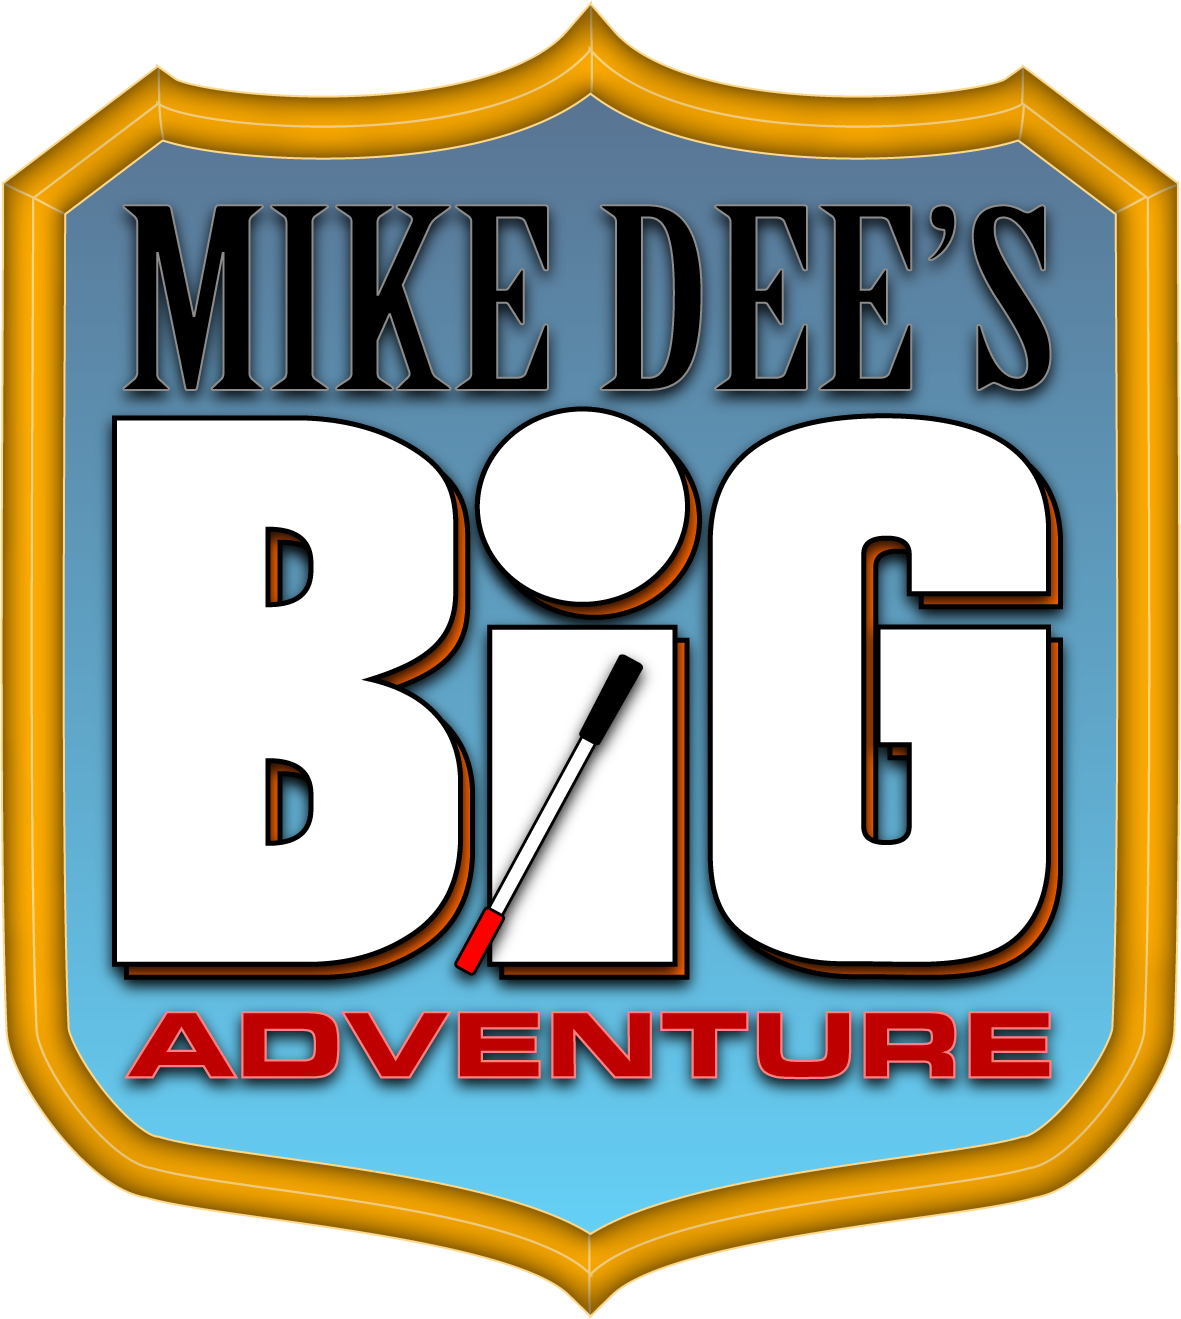 Mike Dee's BIG Adventure